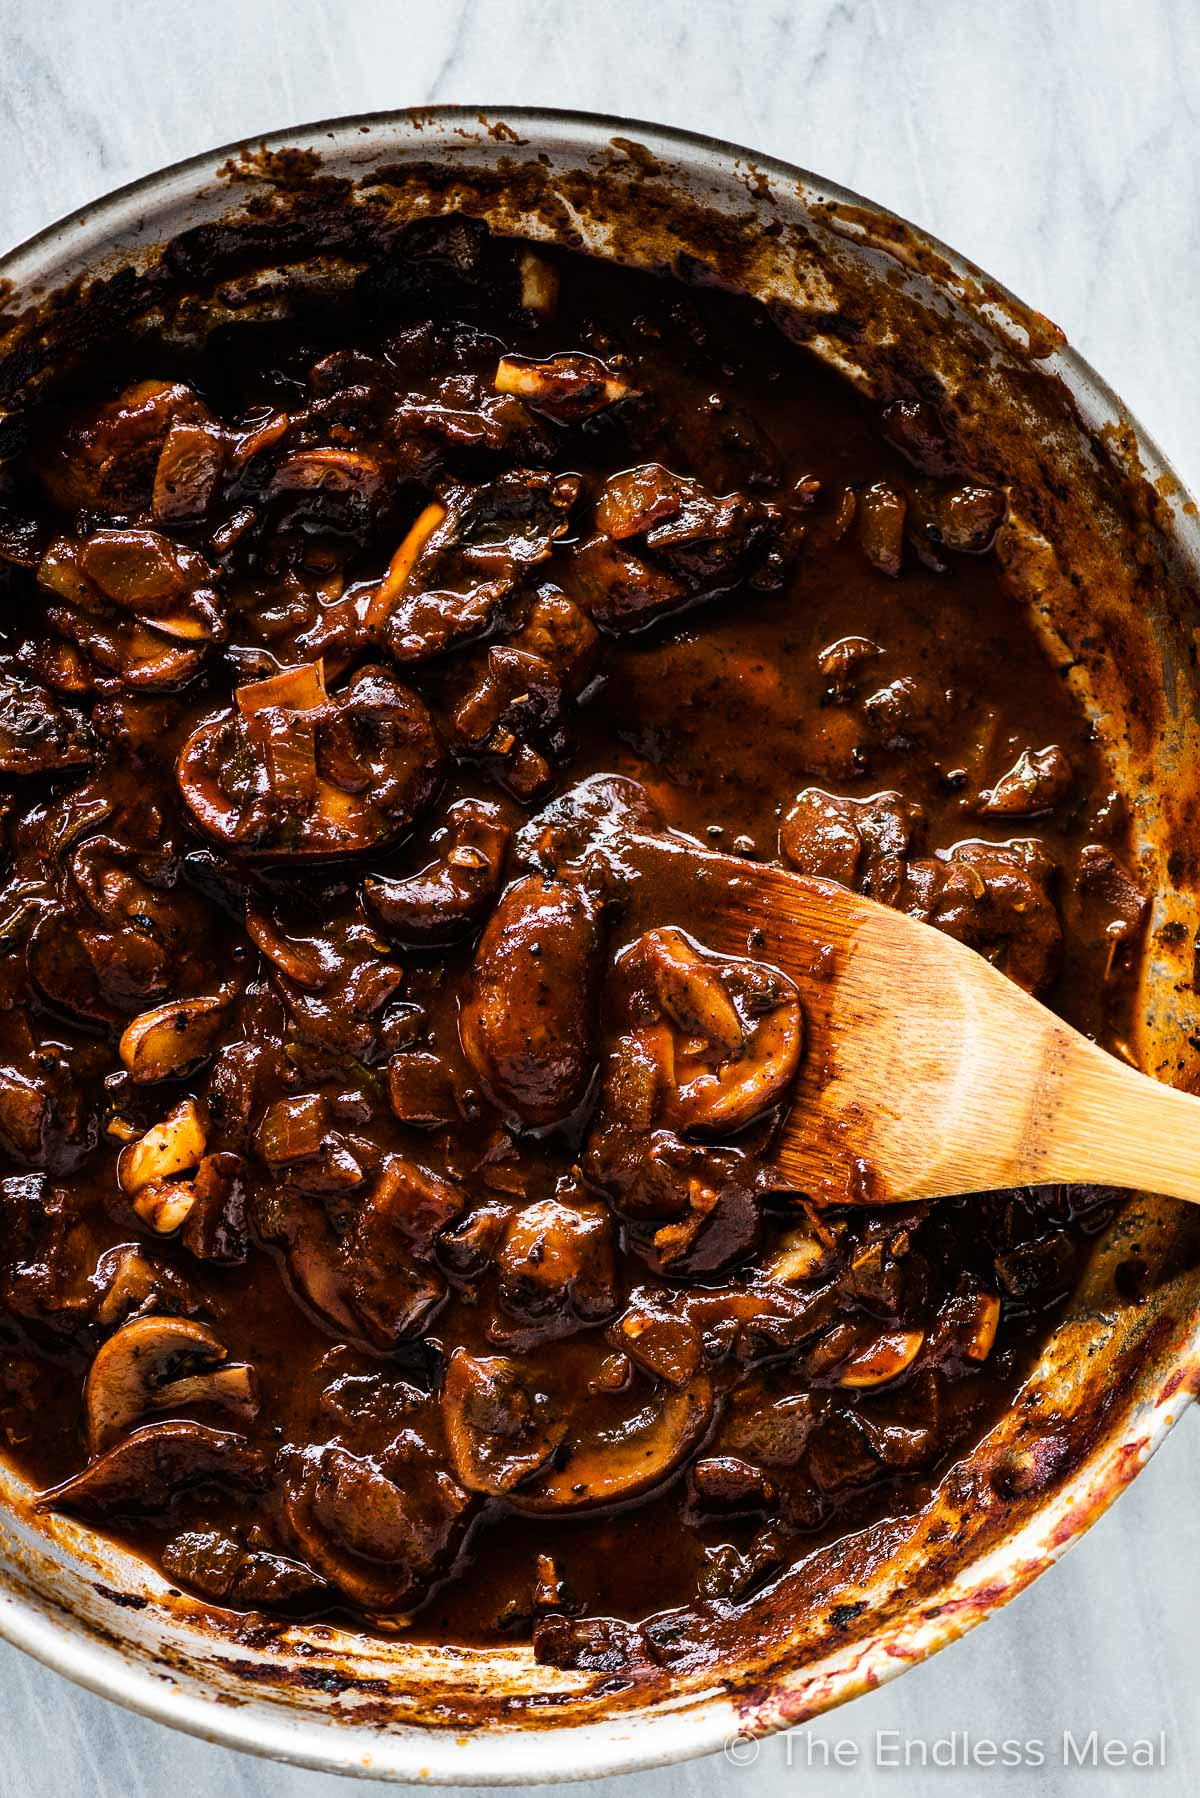 The cooked mushrooms and other ingredients in a pan before the gravy goes into the blender.